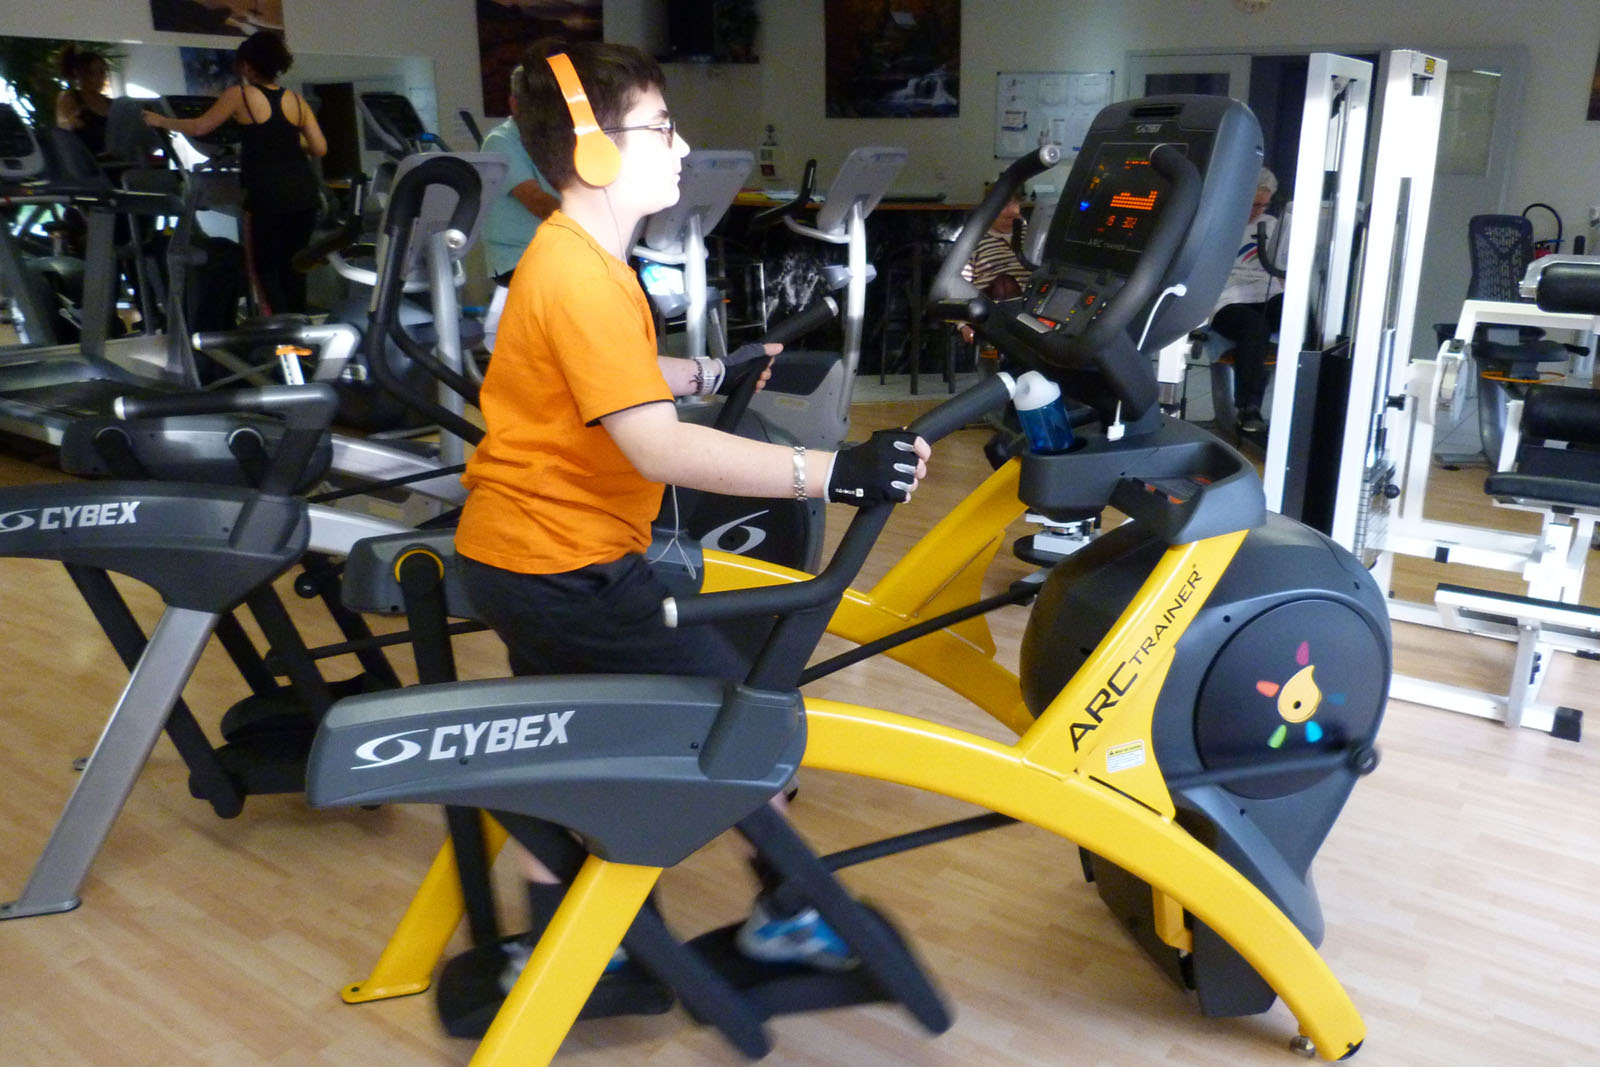 Salle de sport Bergerac Arc Trainer Lower Body 770A Cybex 2